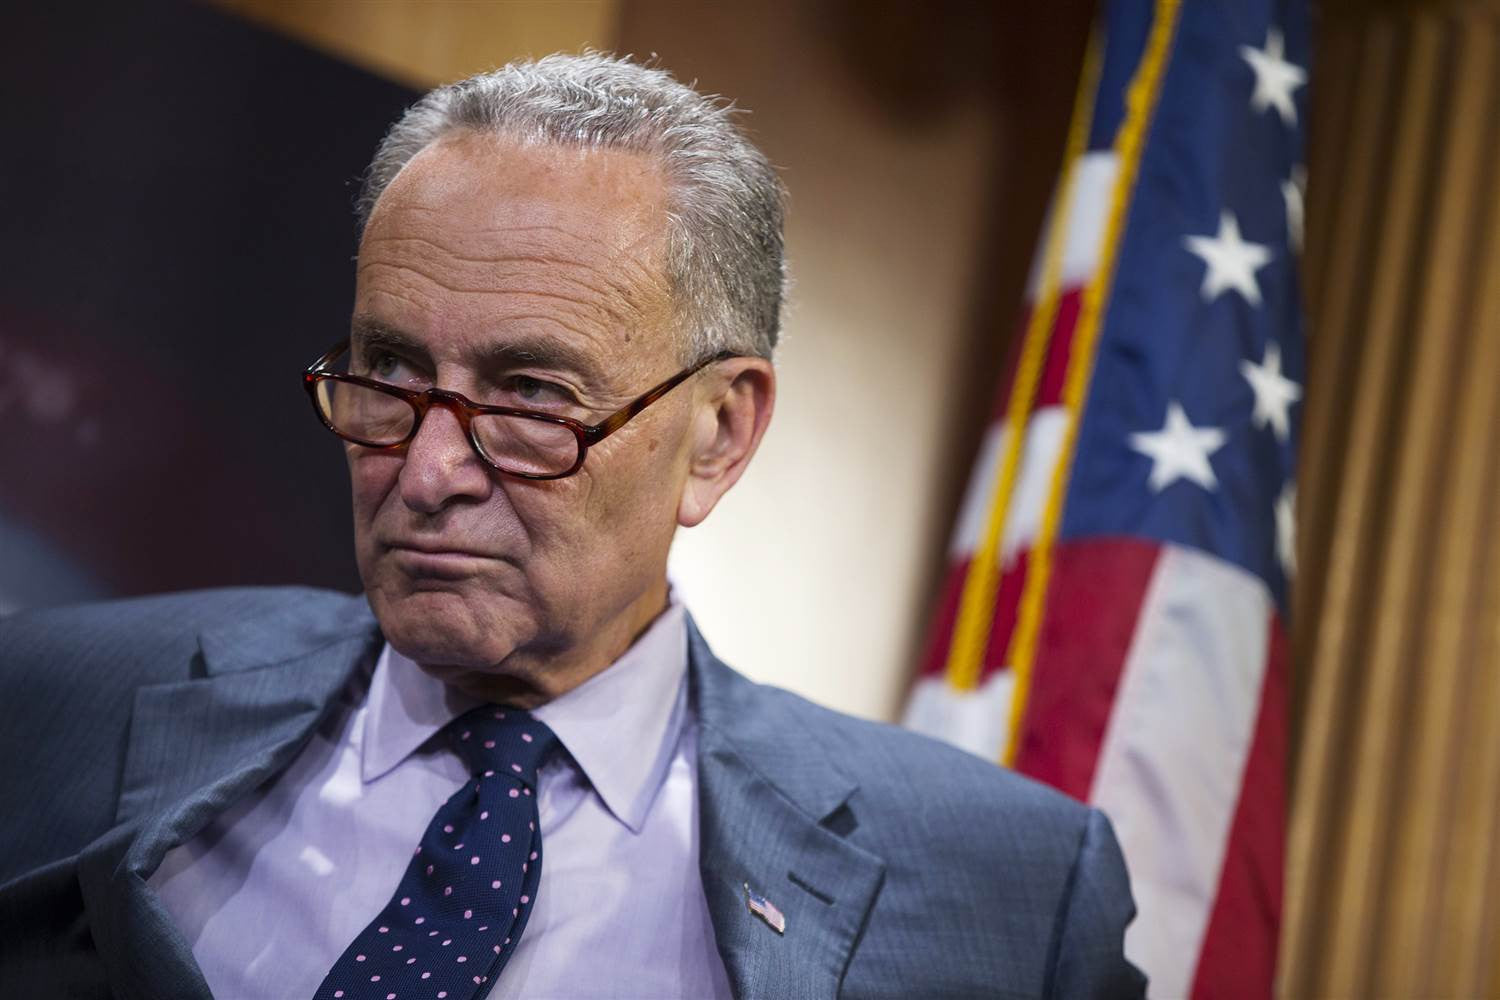 Sen. Schumer rides coattails of FDA e-cig regulations into the spotlight